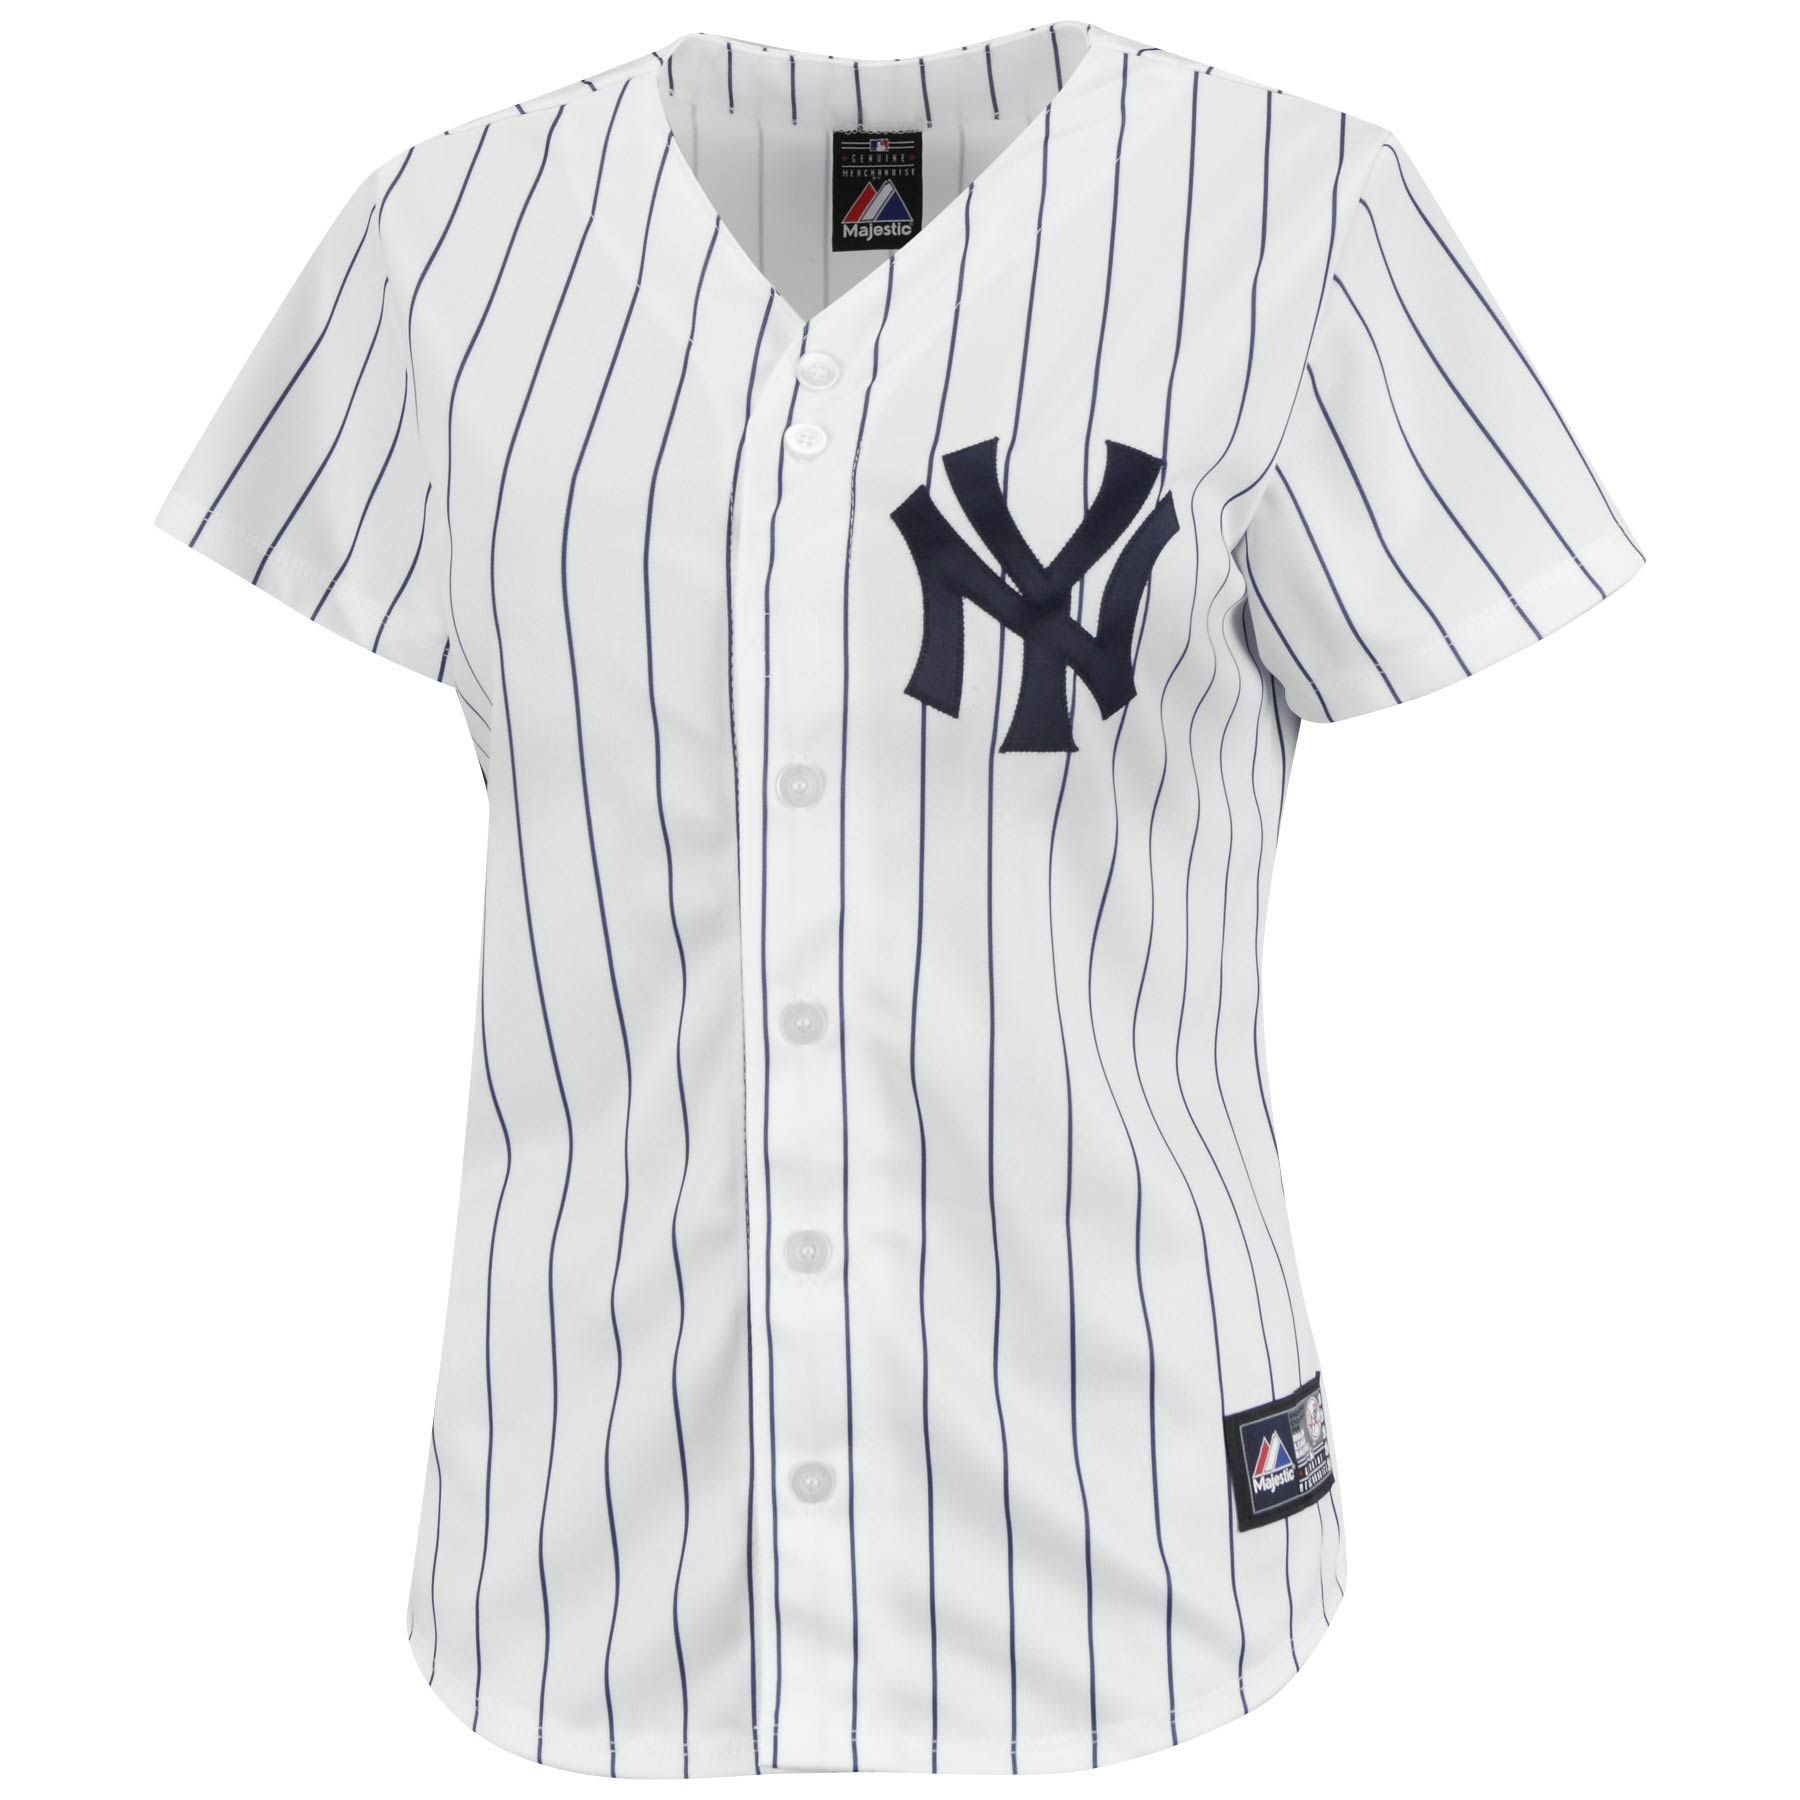 198b16a9e22 Baseball Jersey for Women